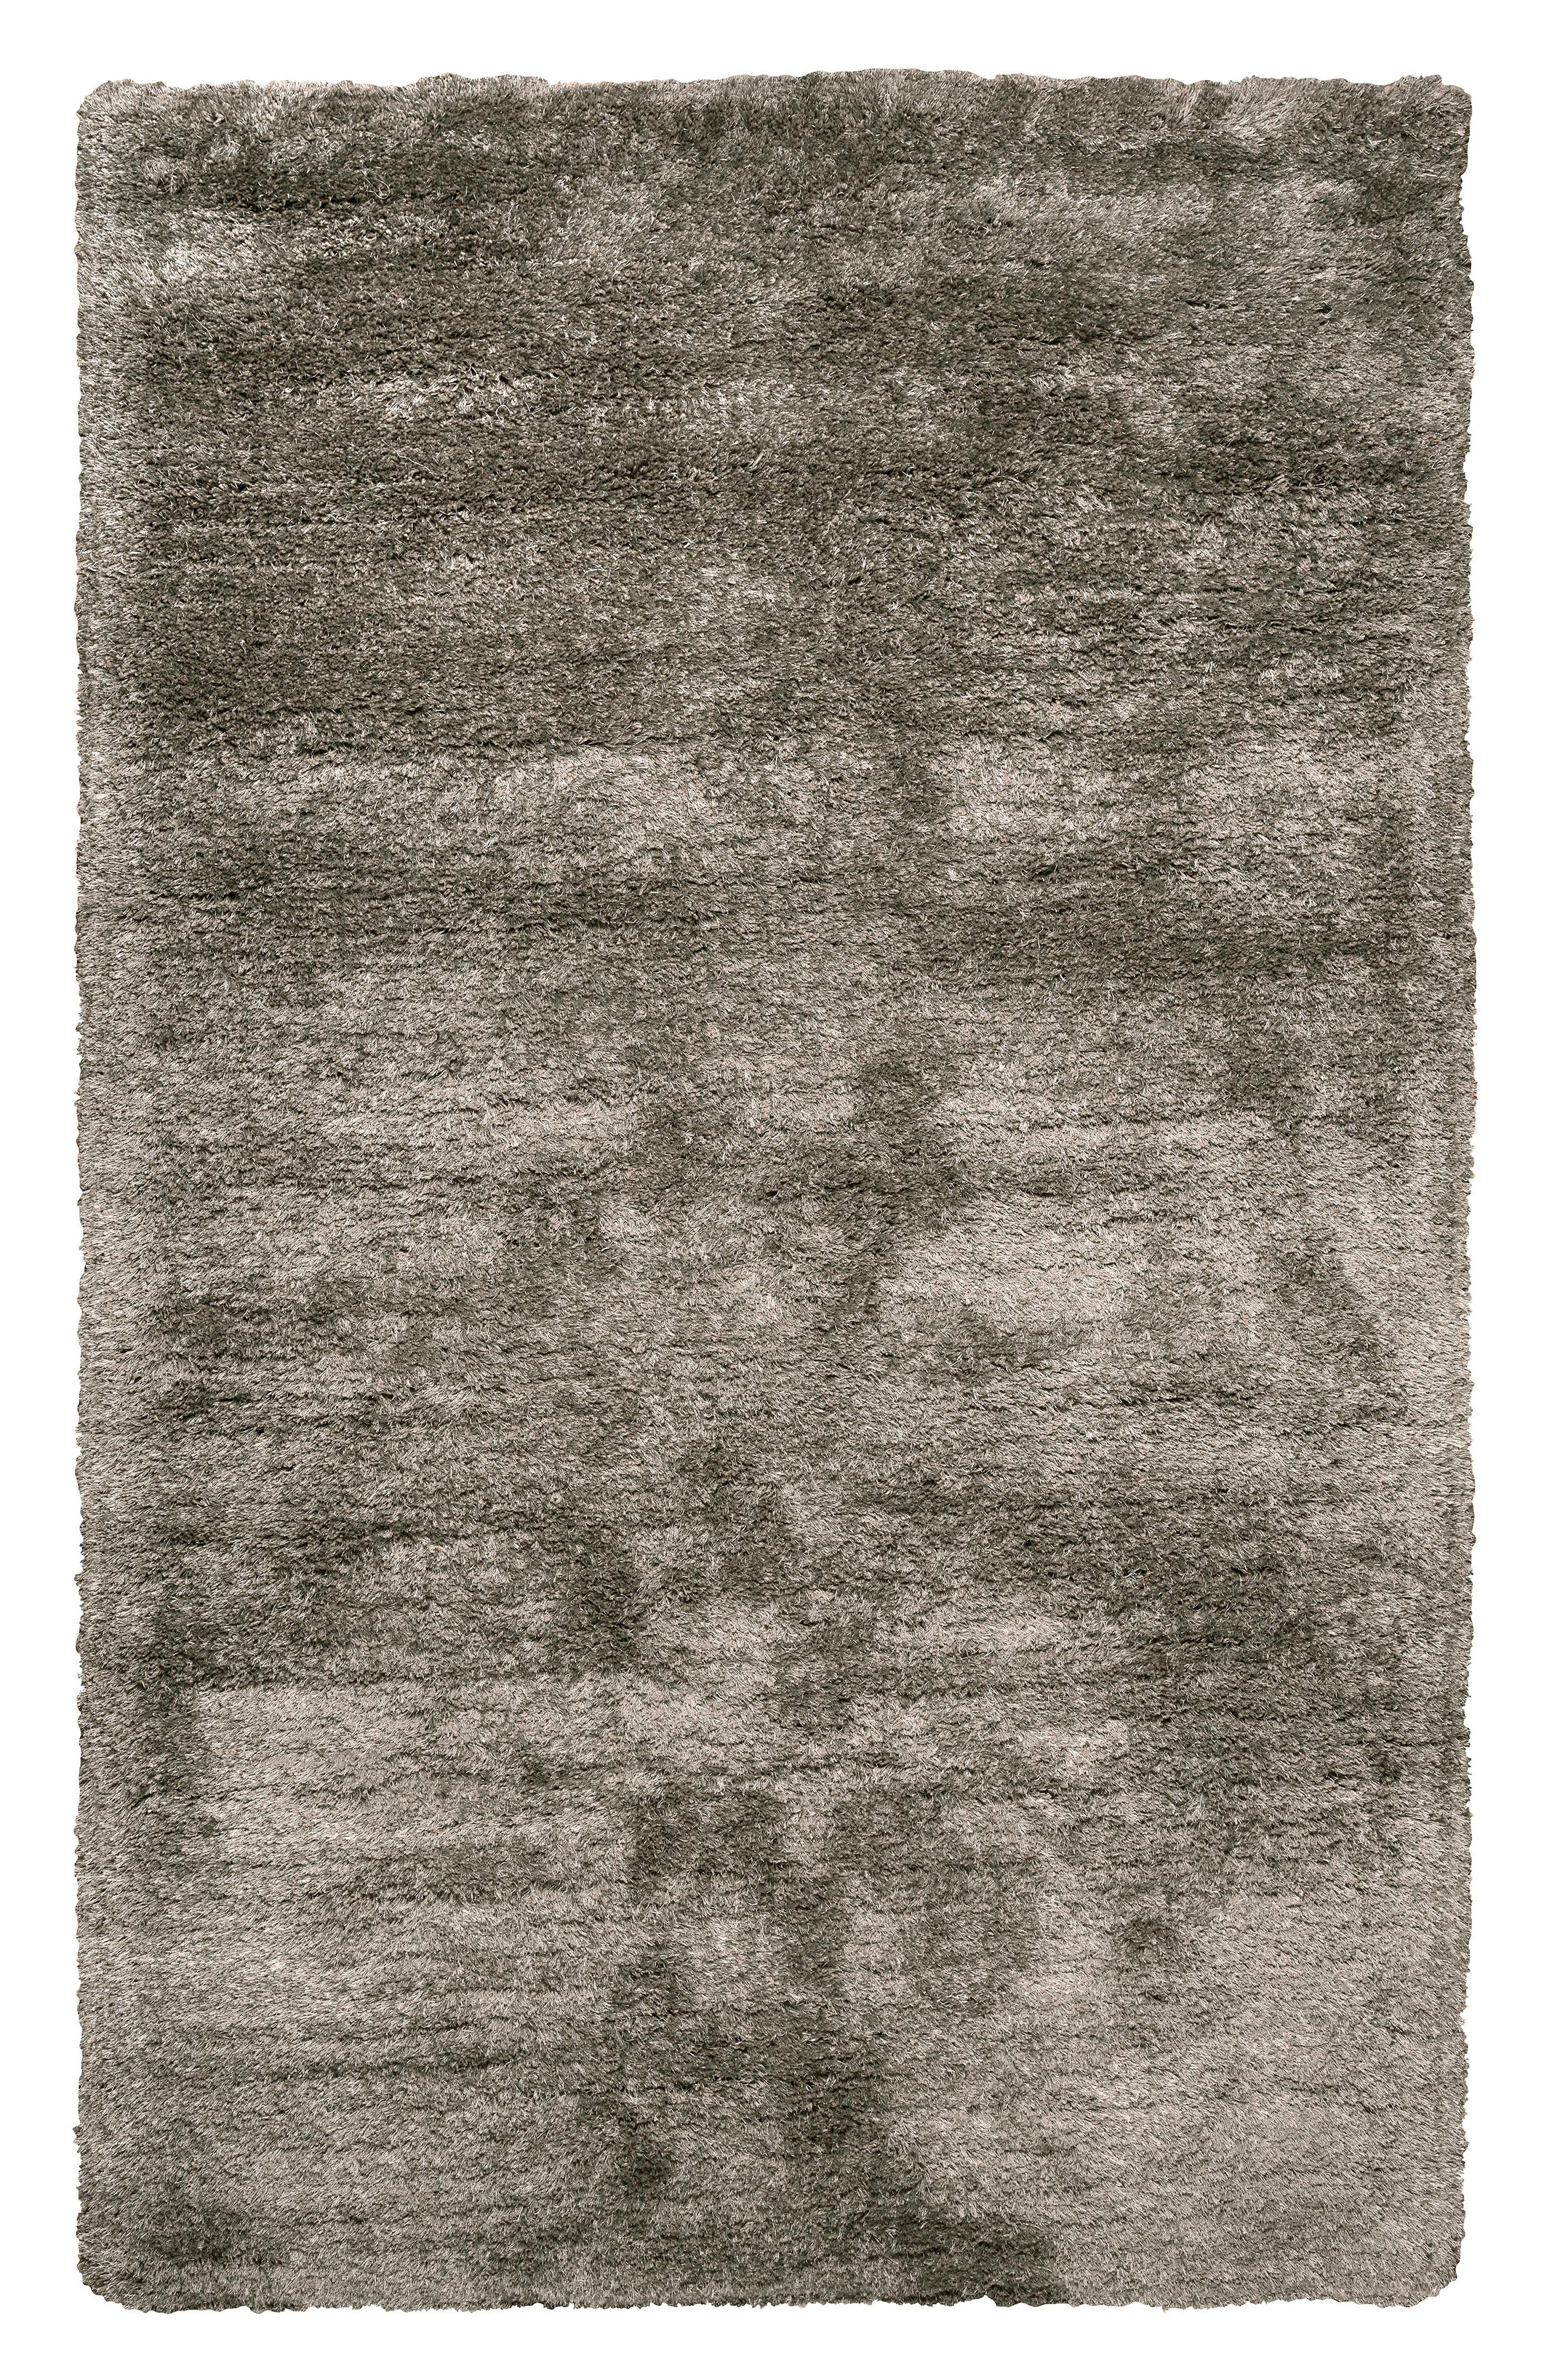 Alternate Image 1 Selected - Rizzy Home Commons Bound Rug